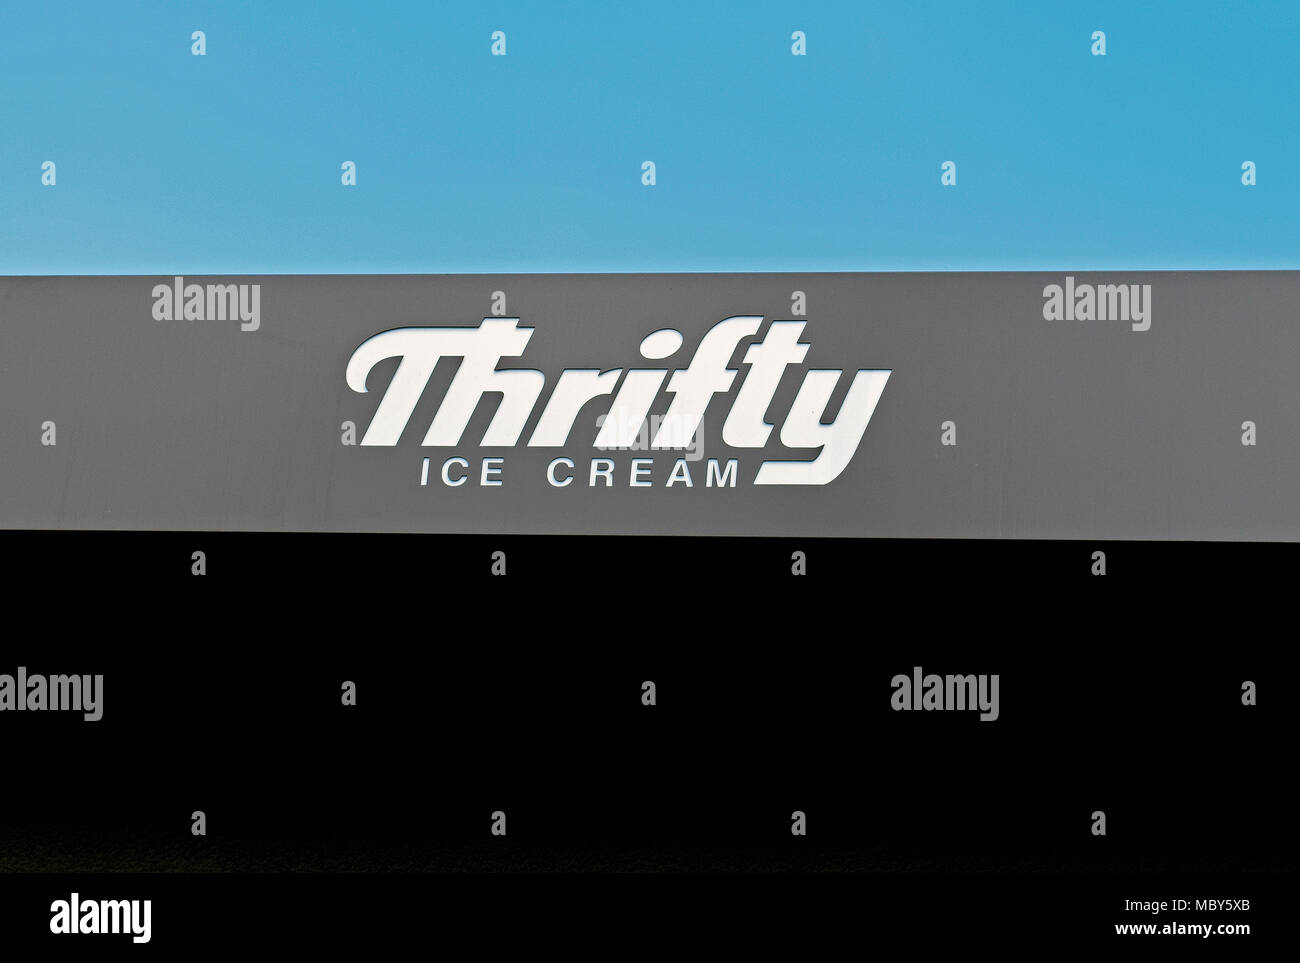 Thrifty Ice Cream sign, California - Stock Image